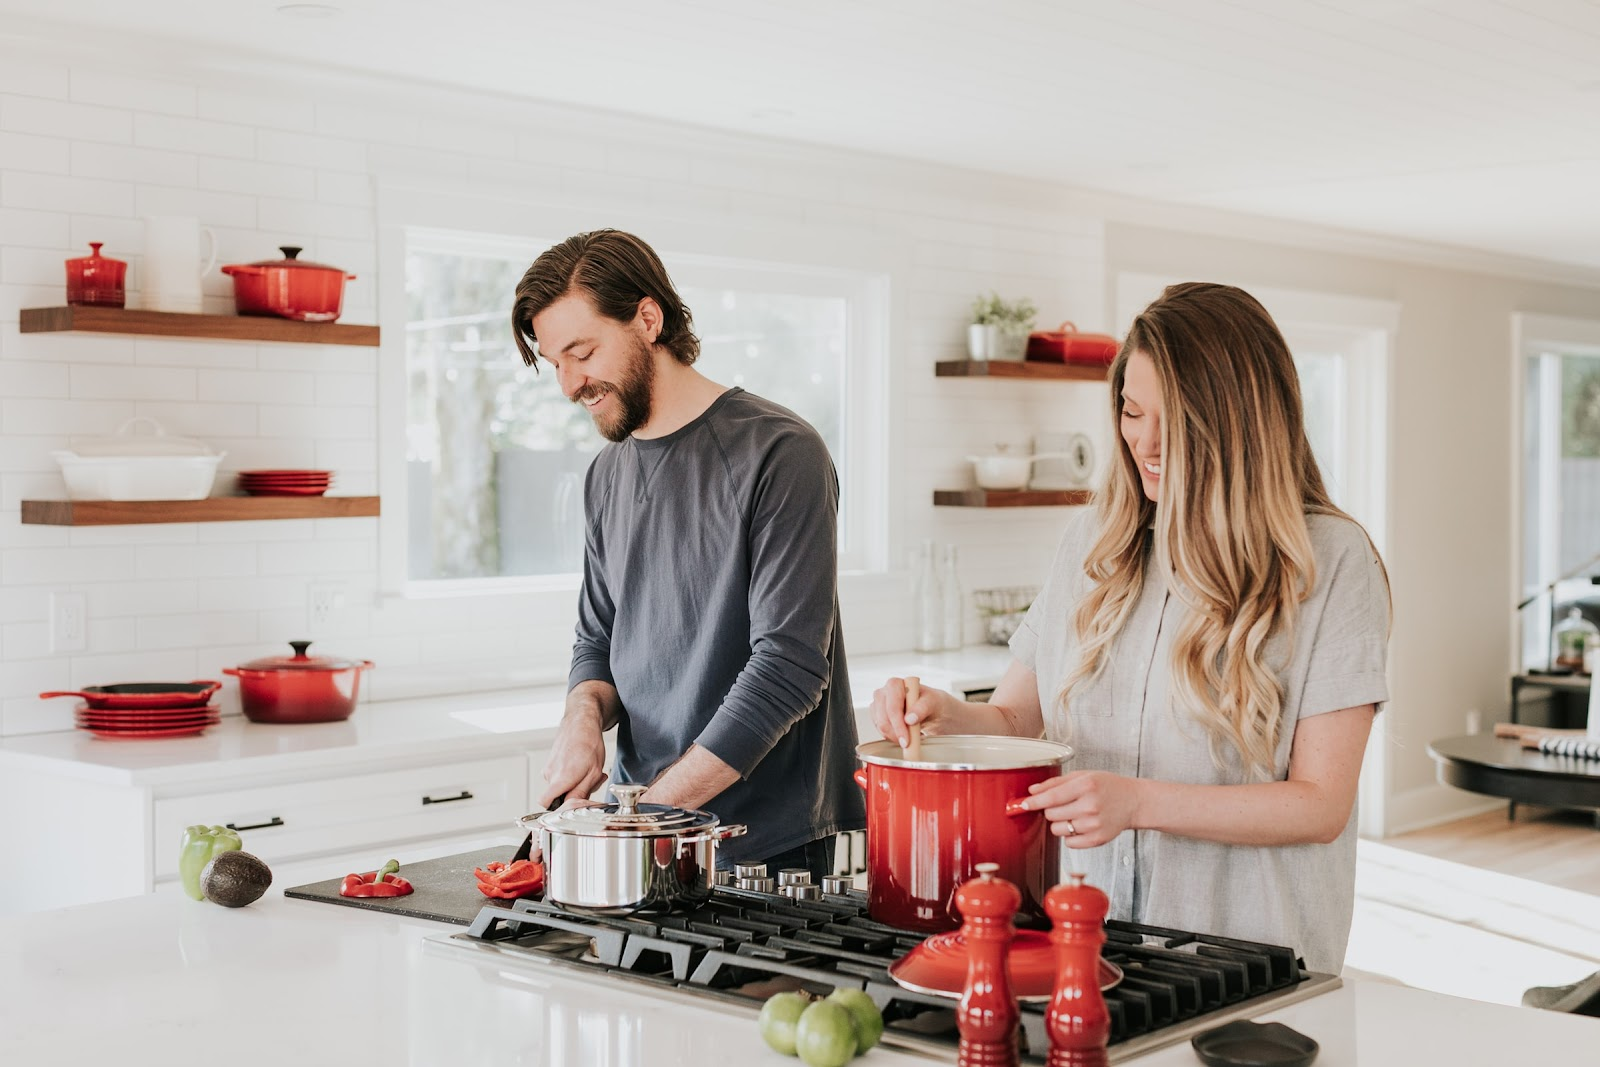 Cooking Together in an Open-Plan Kitchen